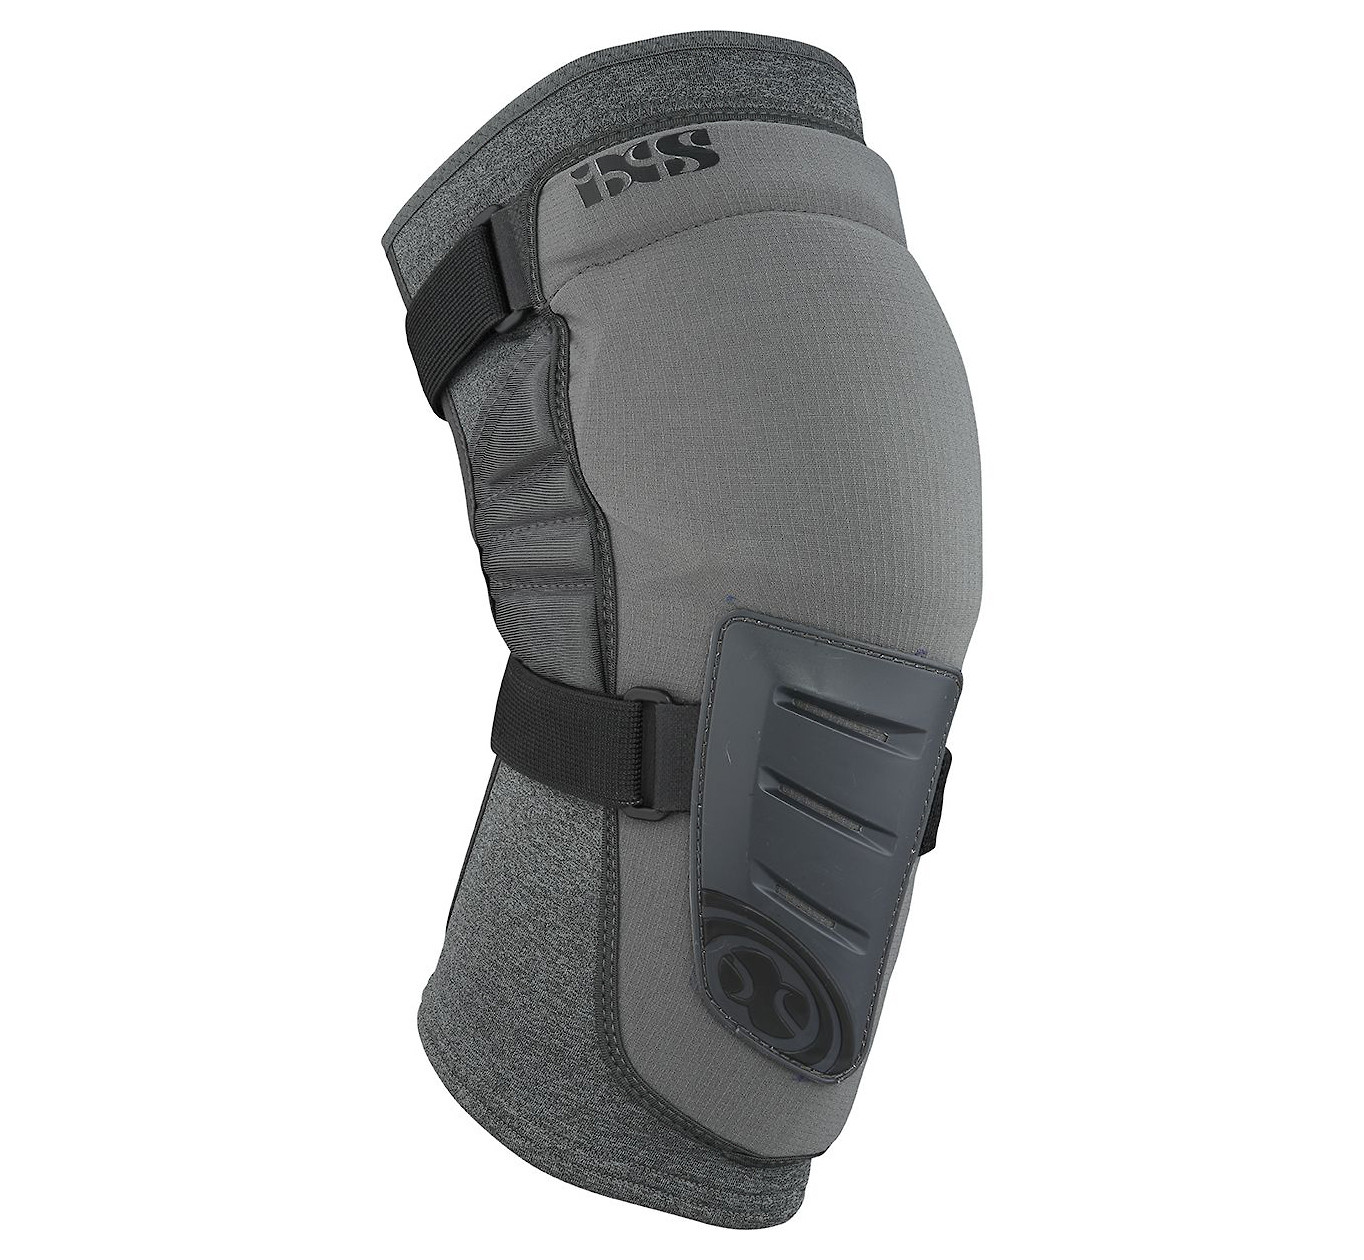 iXS Trigger Knee Guards